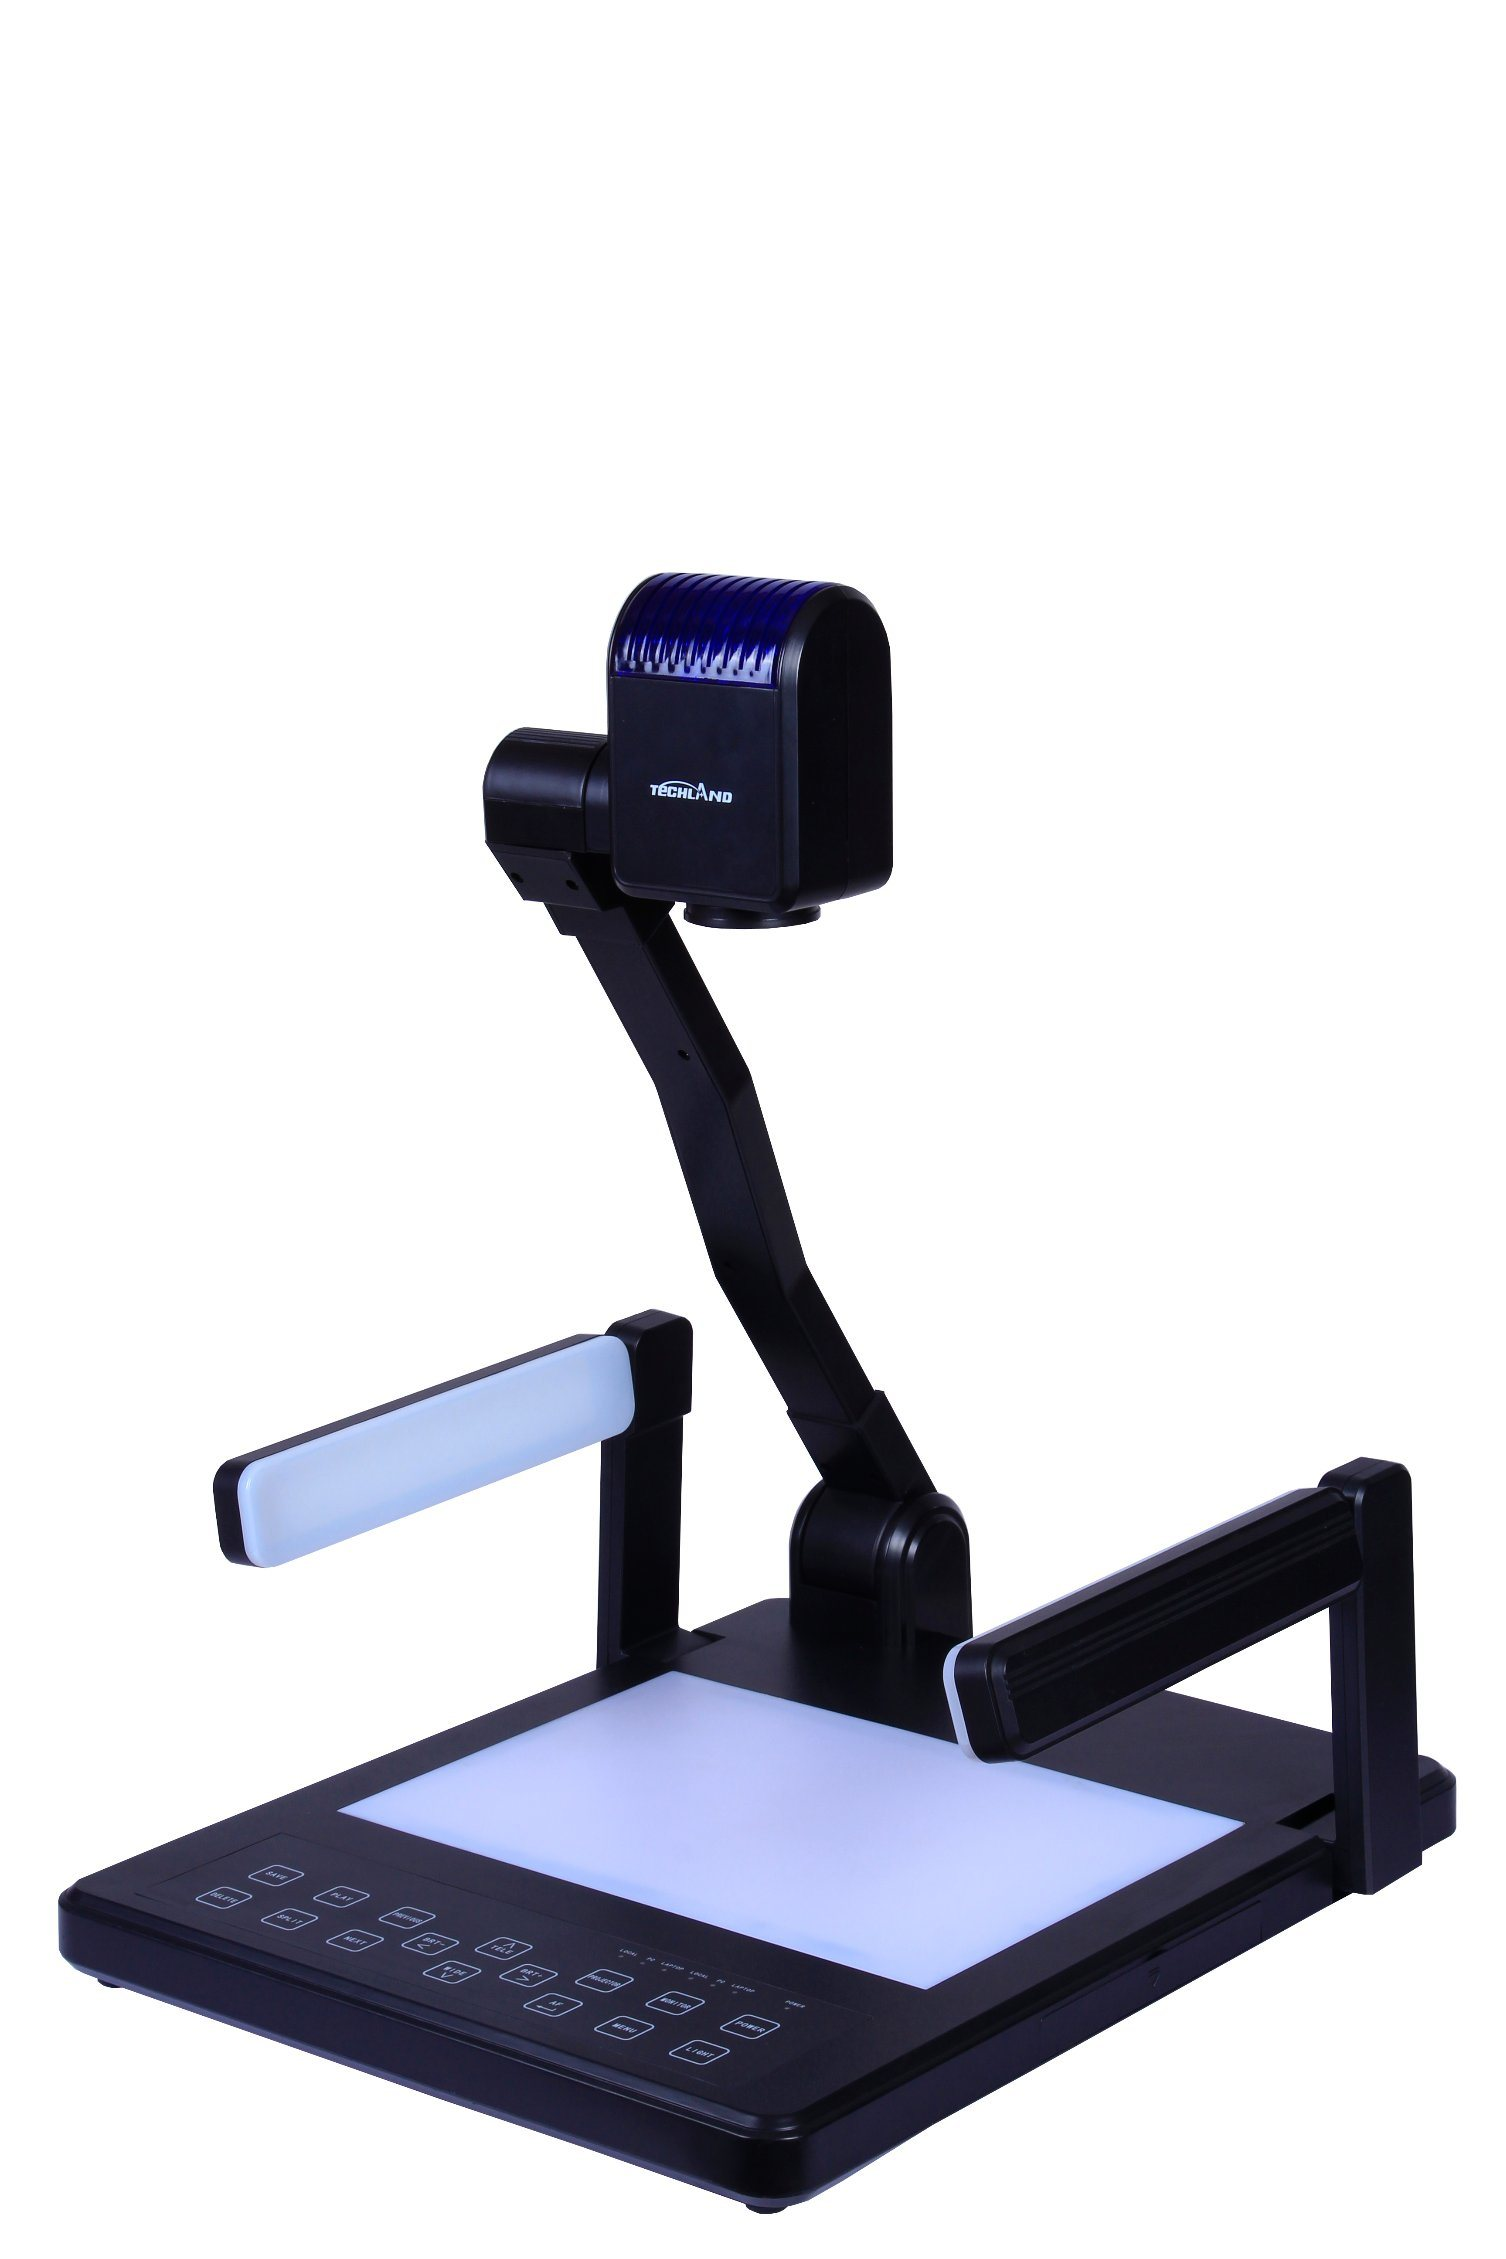 Conference Equipment Document Camera Desktop Visualizer for Teaching